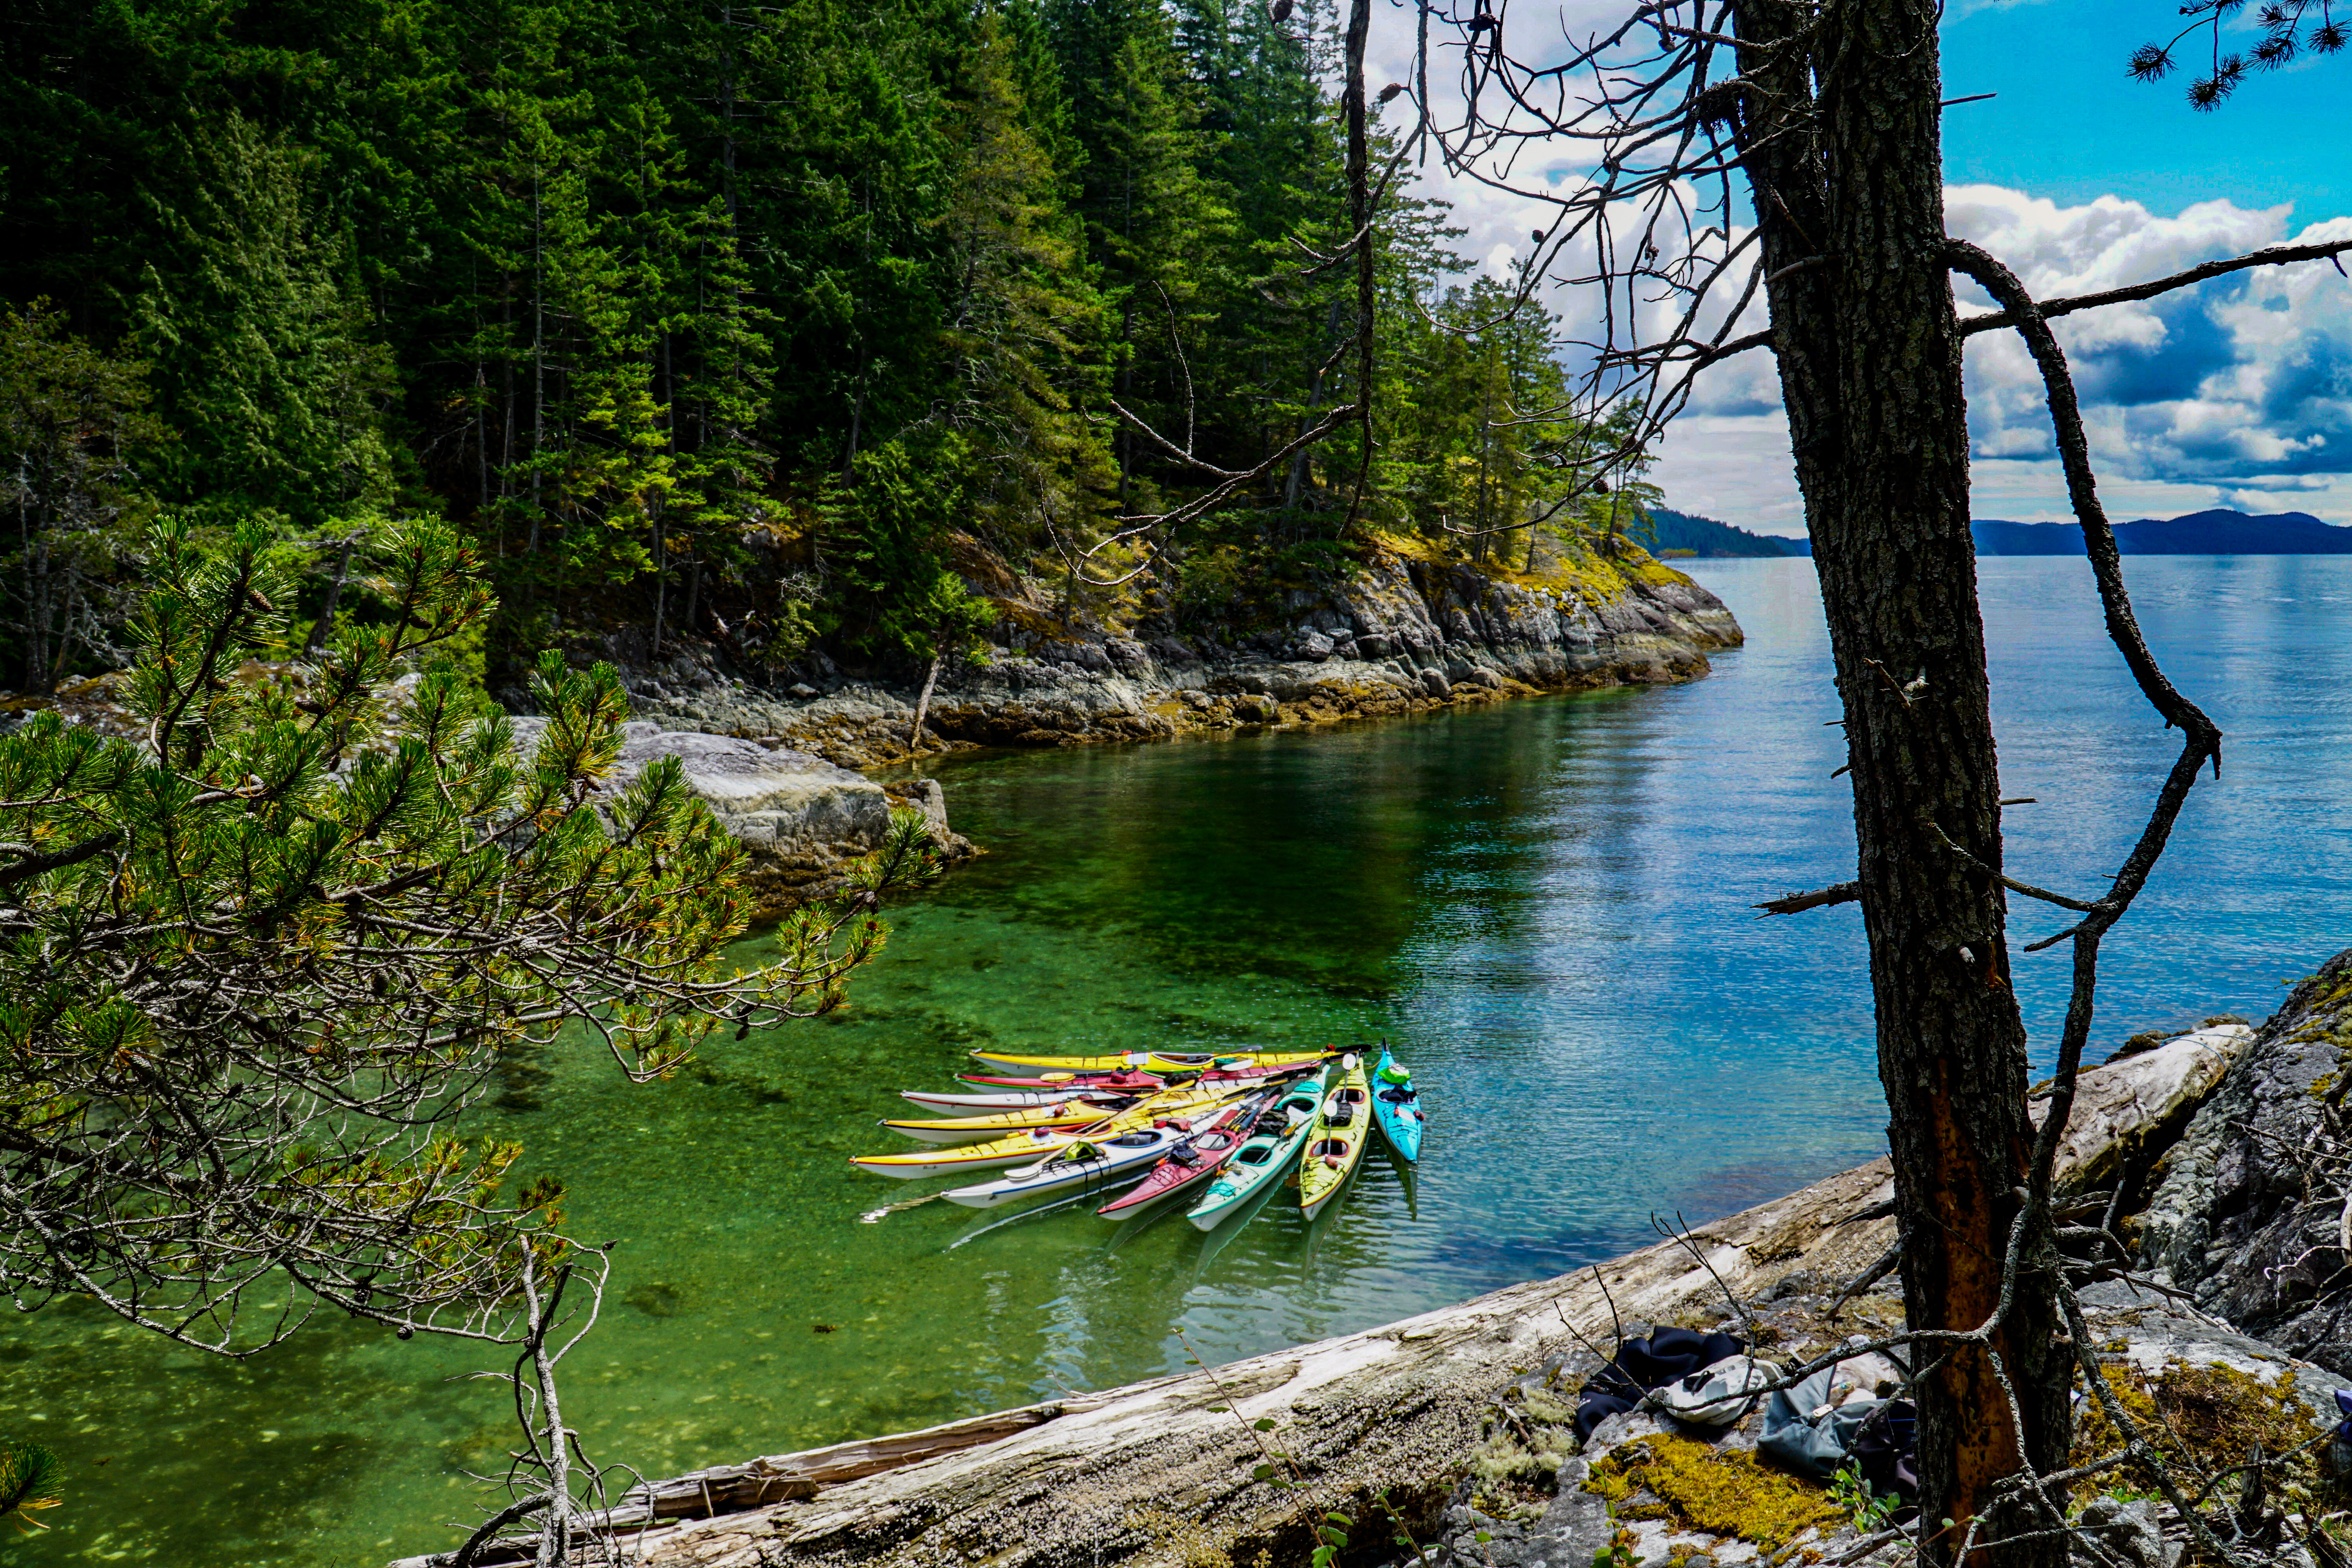 10 colourful tour kayaks rafted together and floating in a bay in Desolation Sound